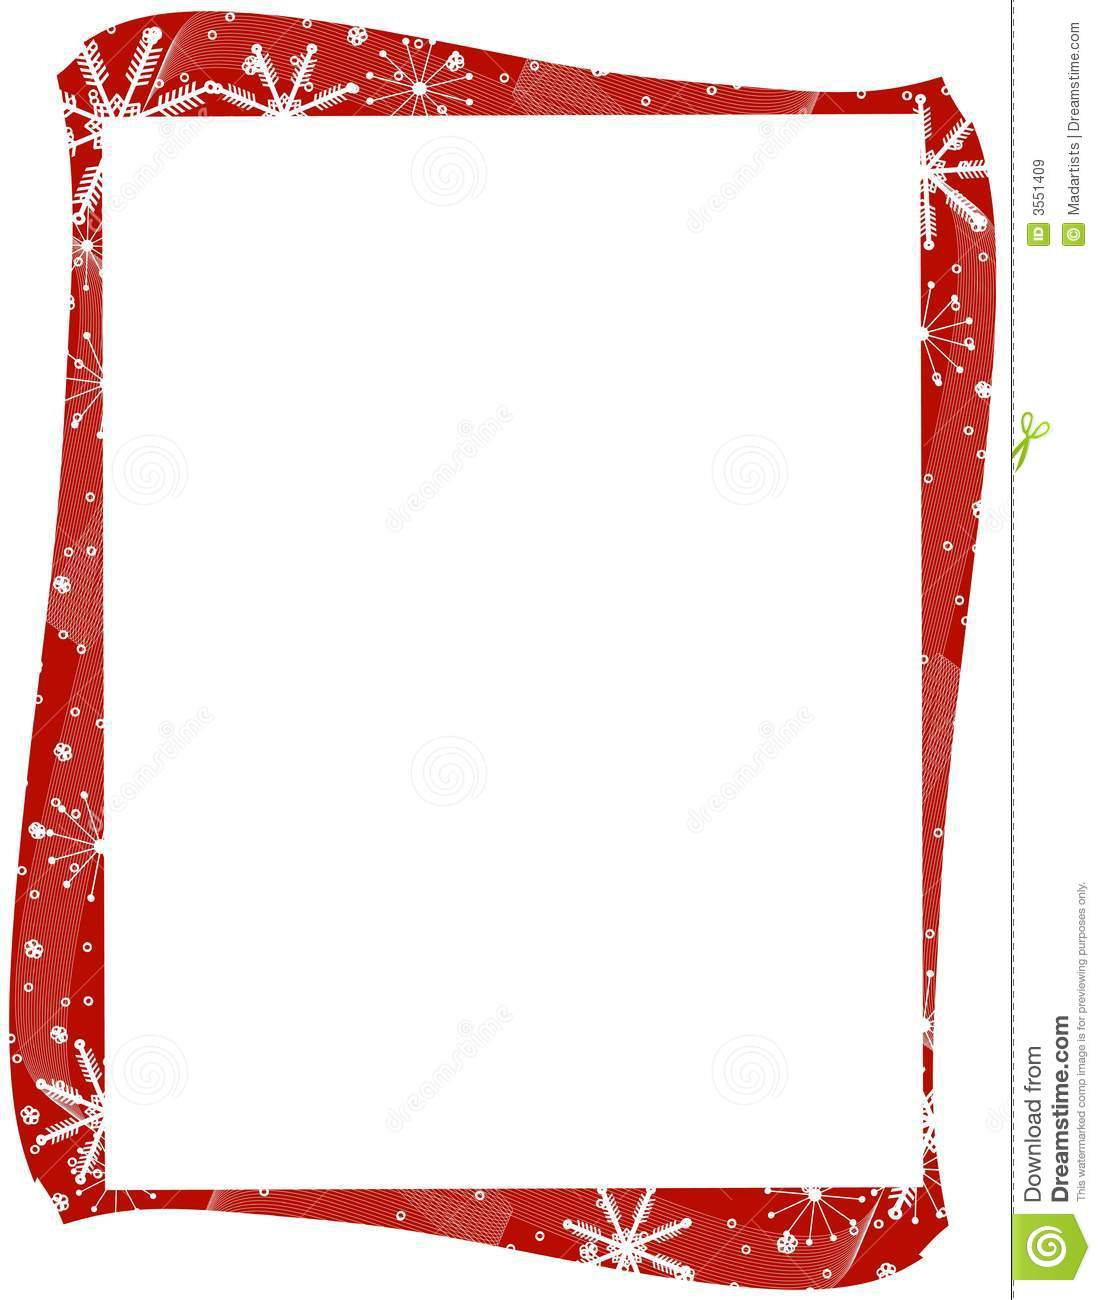 Red Xmas Snowflakes Border Royalty Free Stock Images - Image: 3551409